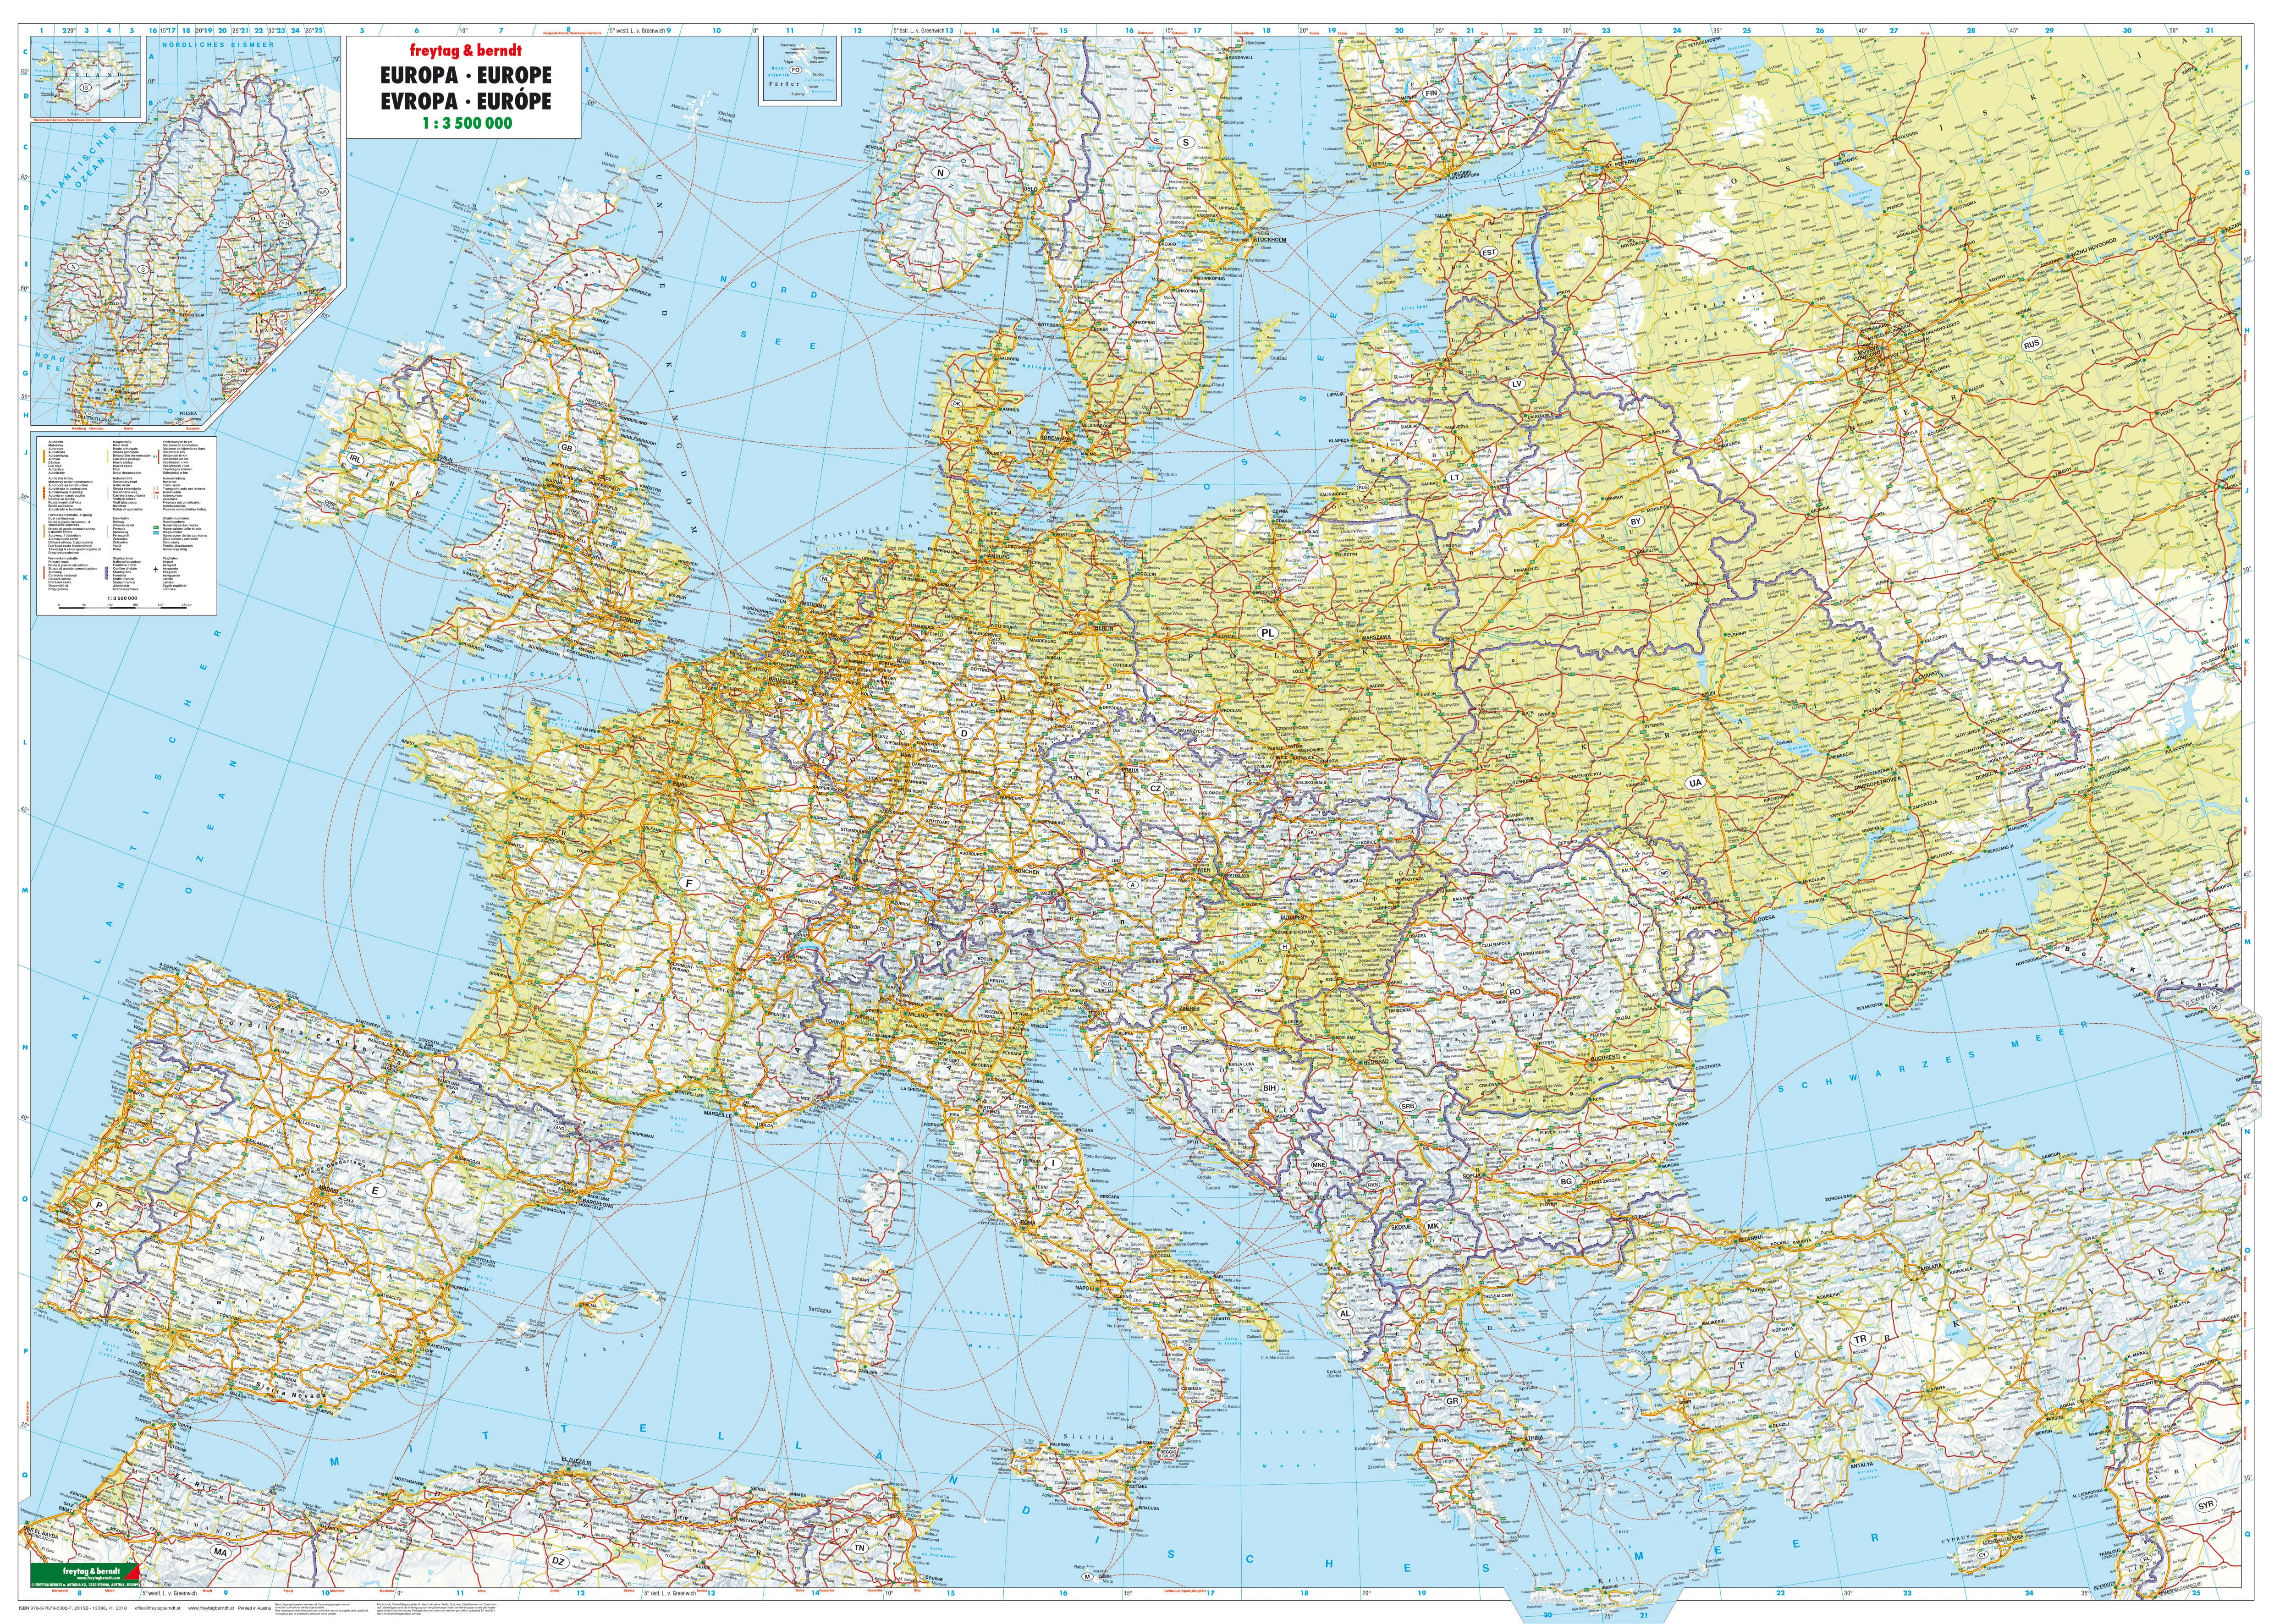 Physical Europe Wall Map Europe Europe Wall Maps